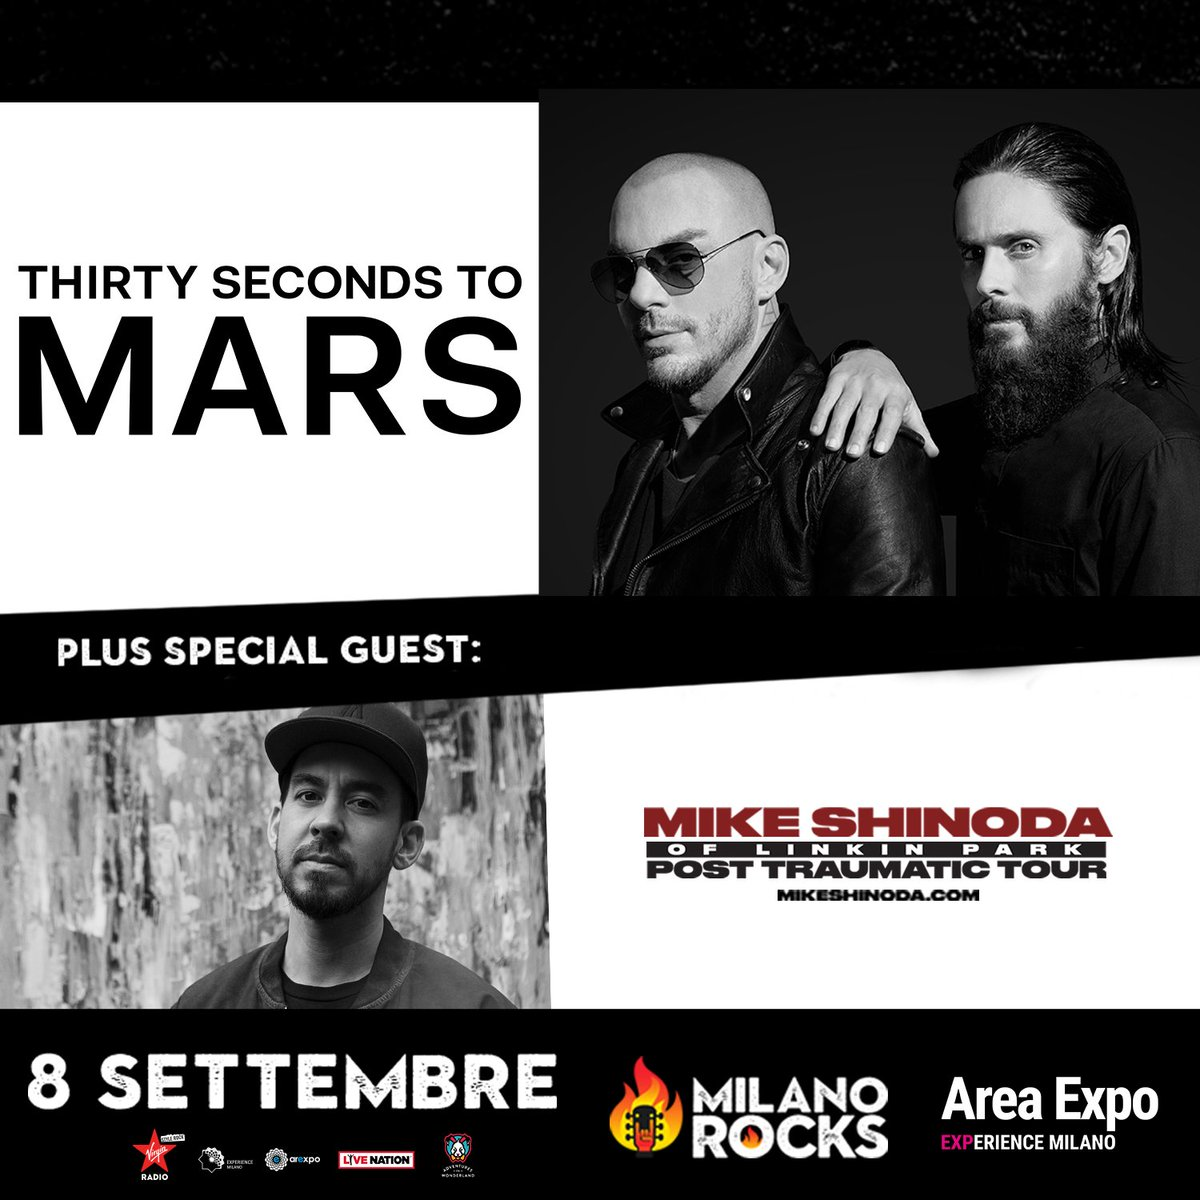 MILAN. @MilanoRocks. SEPT 8, with Special Guest @mikeshinoda.  https://t.co/di8UxRohRR  #MonolithTour #MilanoRocks https://t.co/hXLRhSHsBw